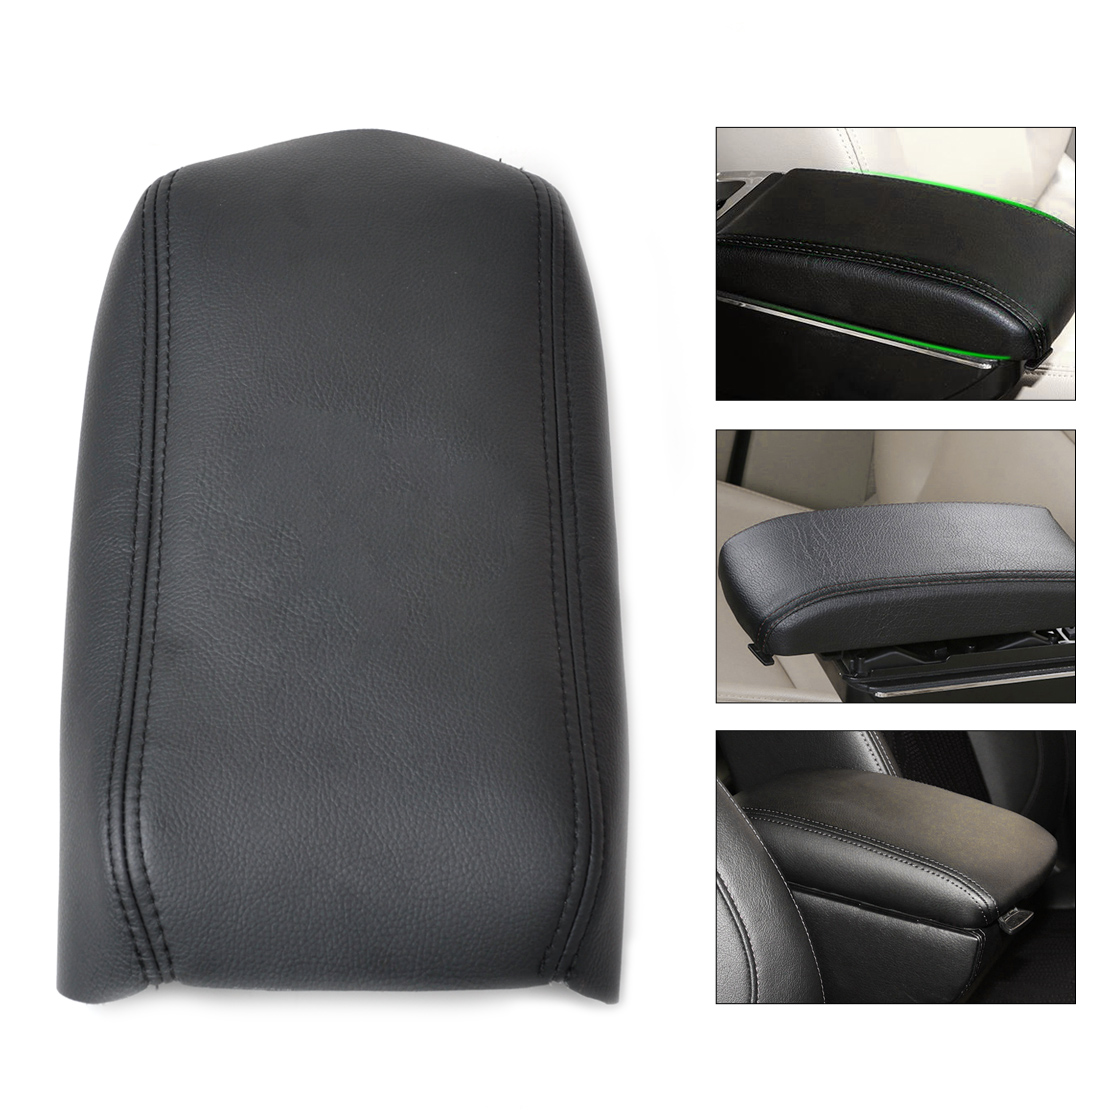 CITALL 1Pc New Leather Auto DIY Black Front Console Lid